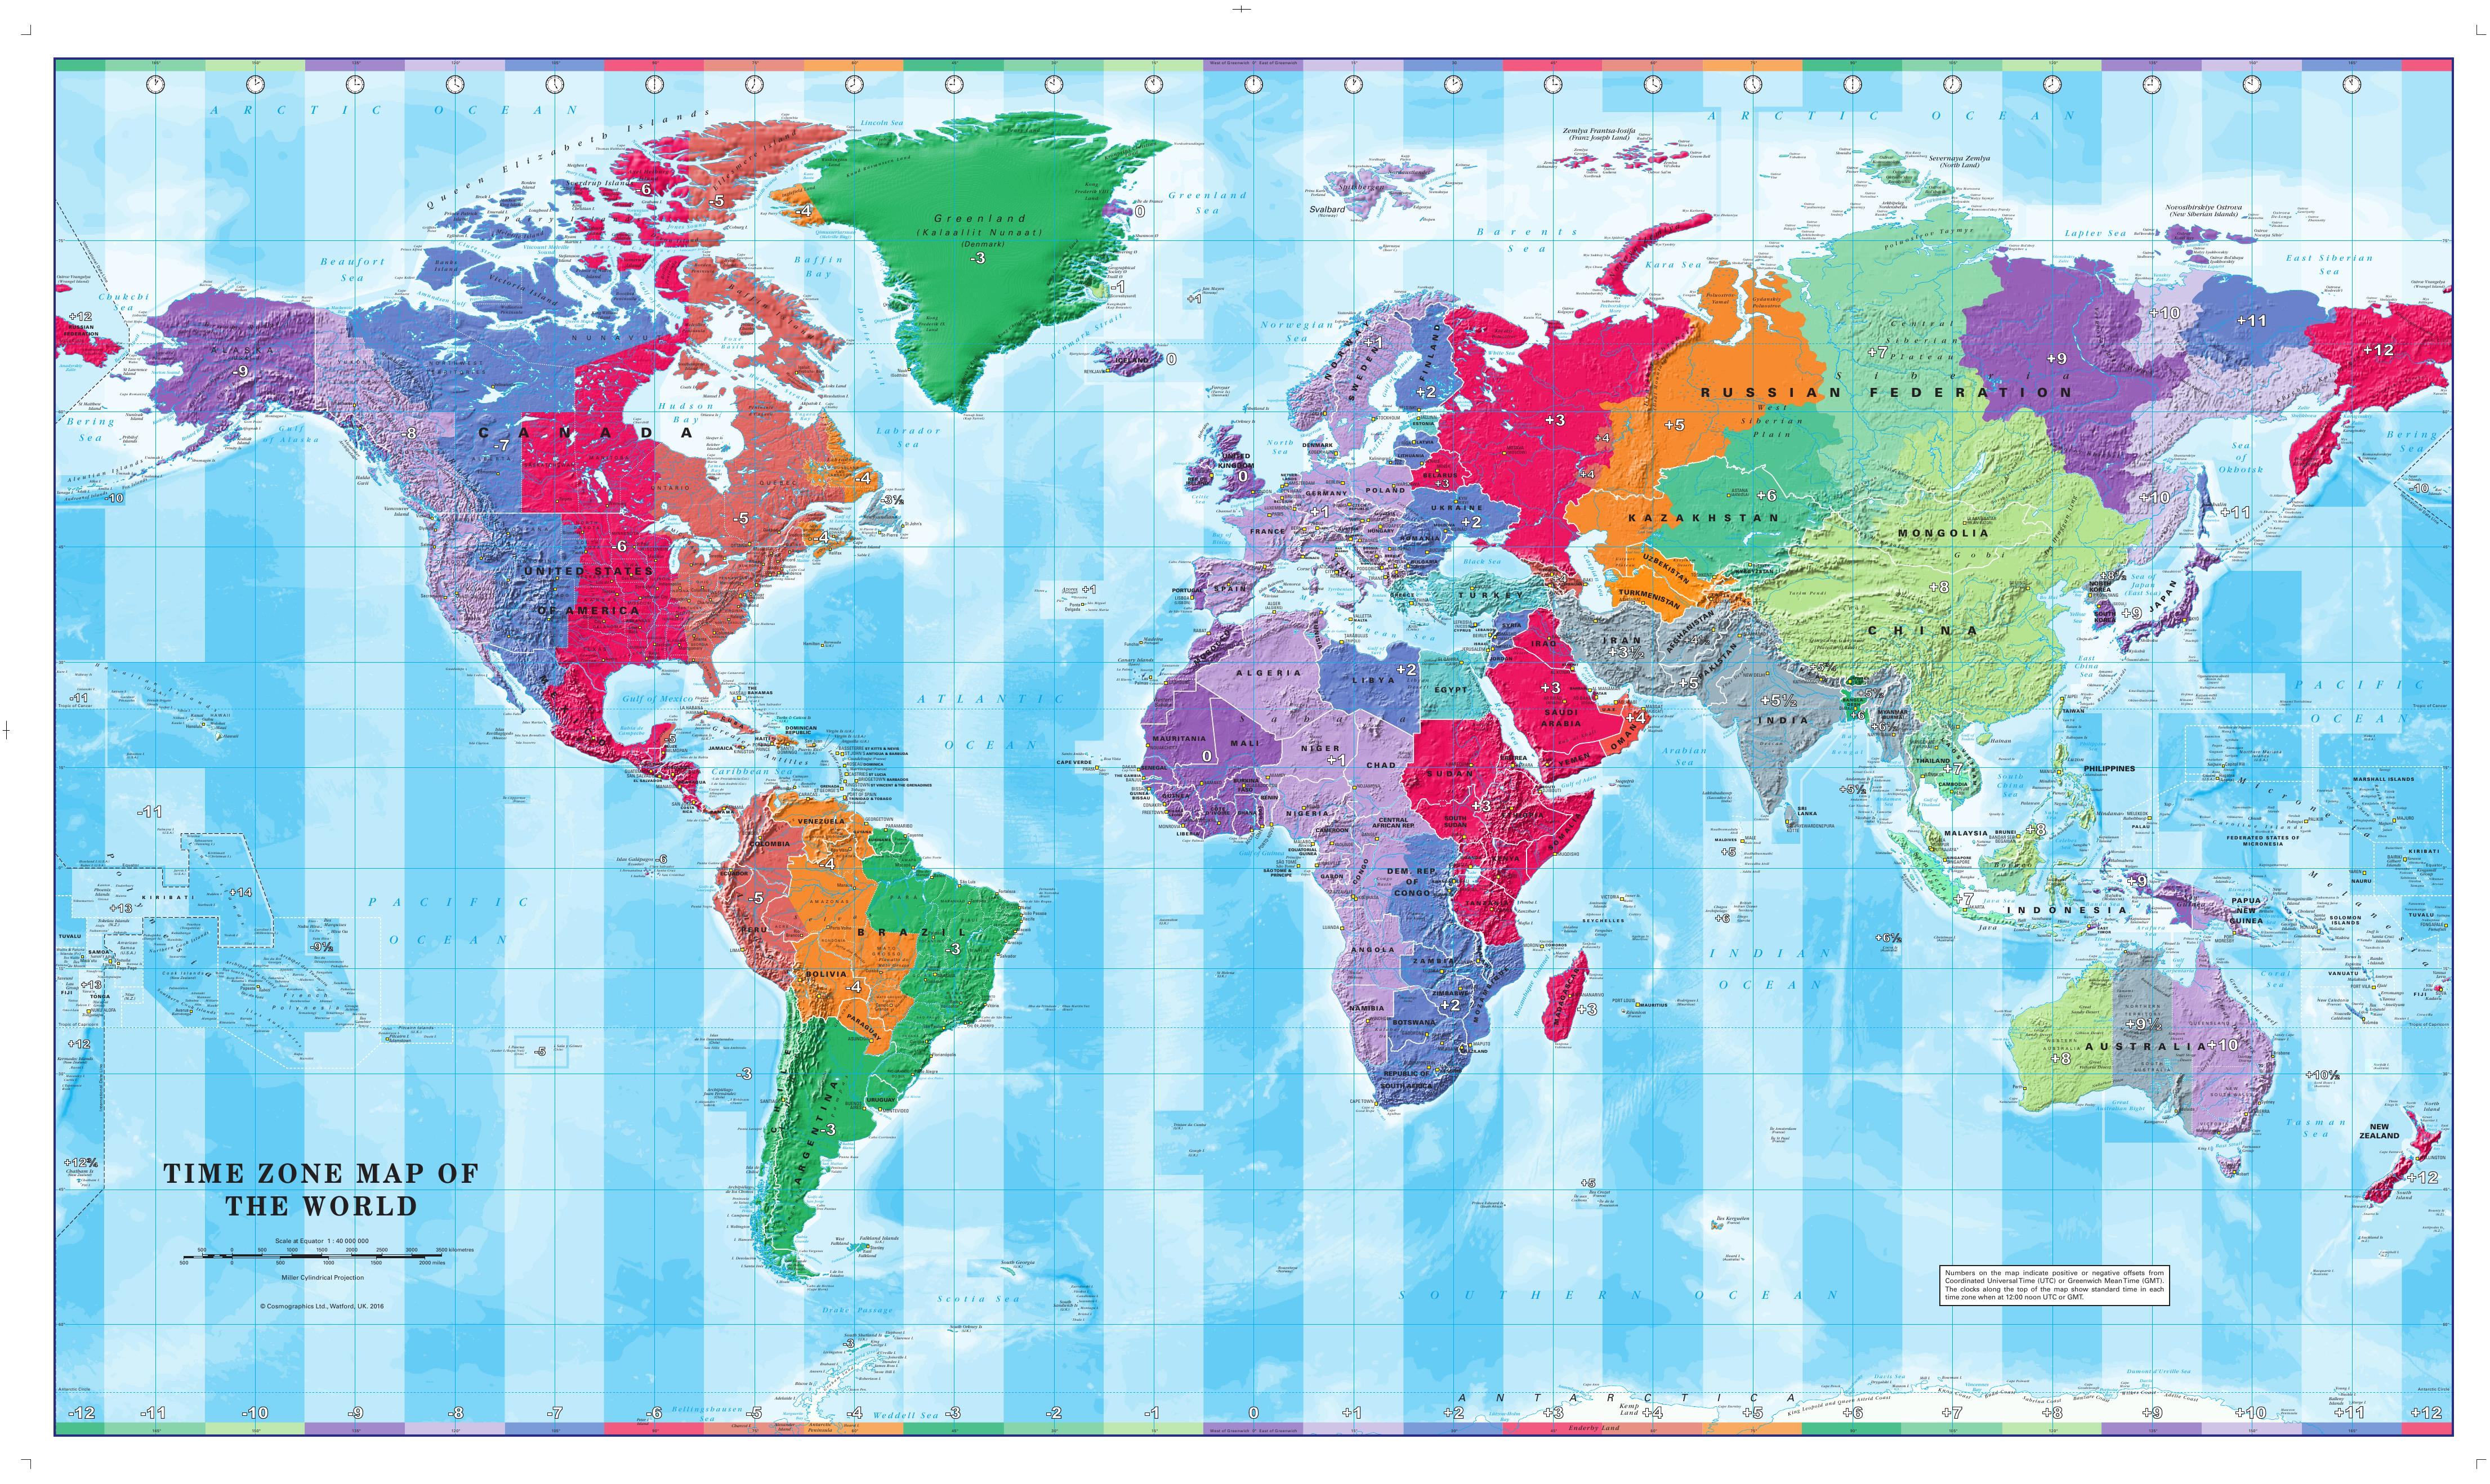 World Map Time Zones 1:40 Mio